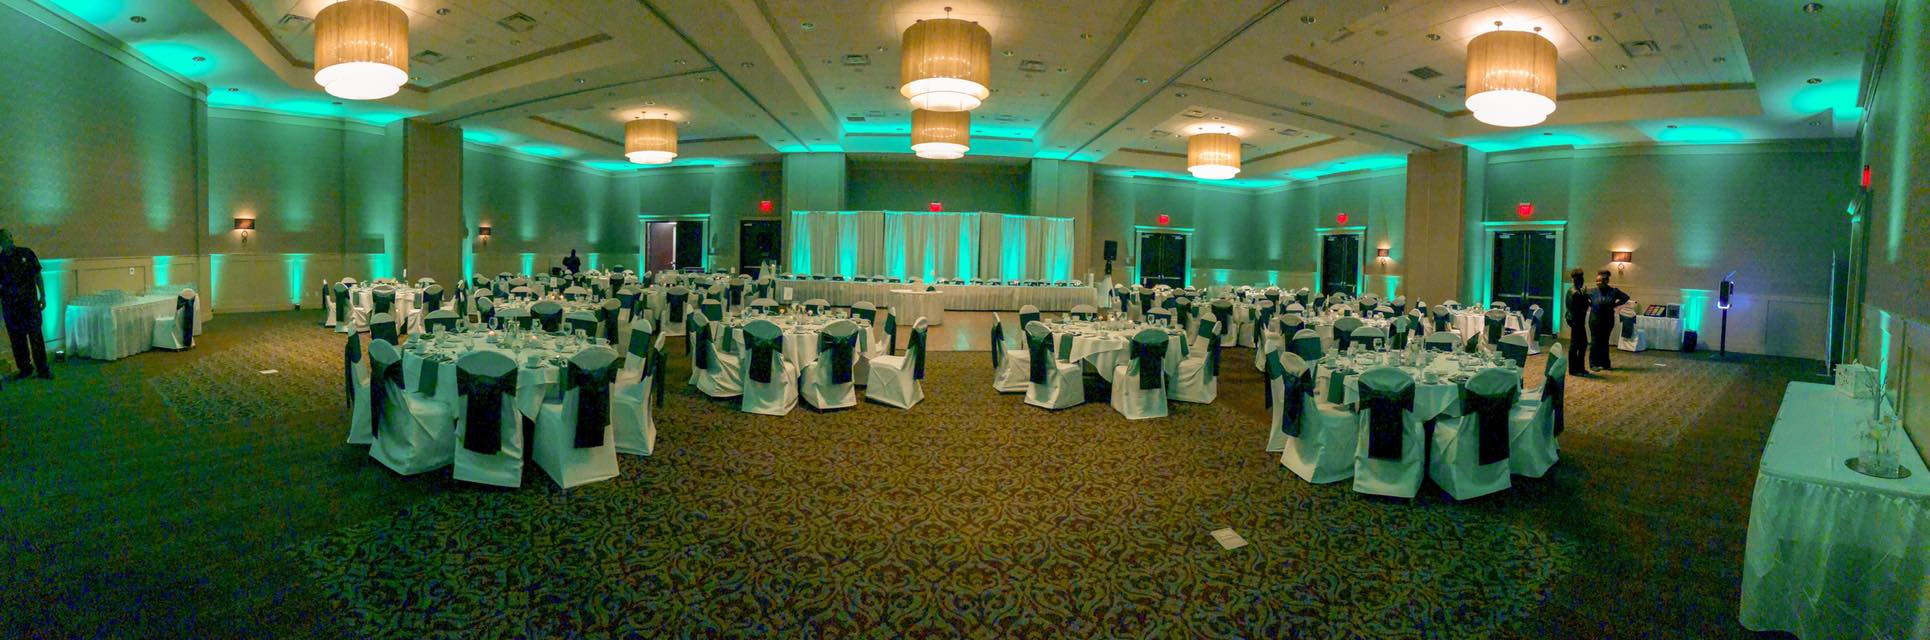 full room green uplighting rental